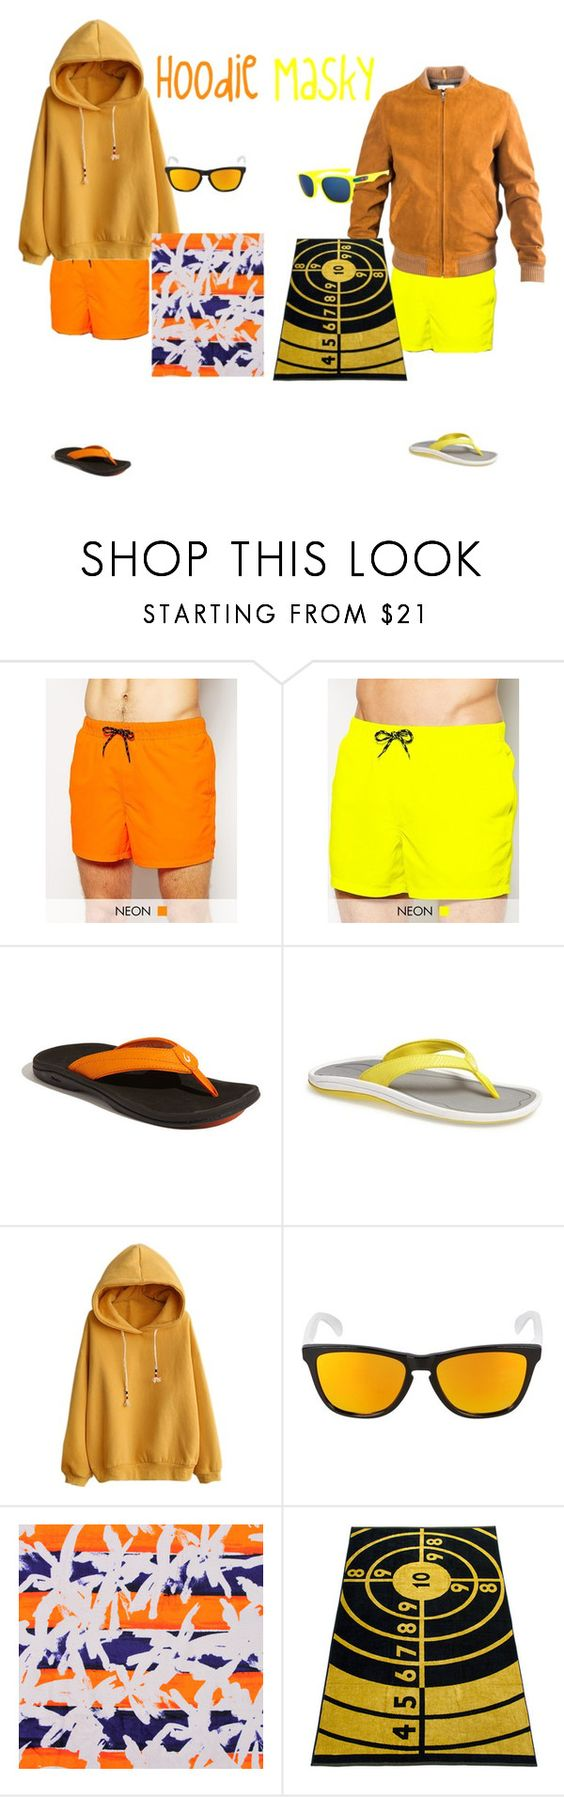 """""""Beach day Hoodie and Masky"""" by hoodie-326 on Polyvore featuring ASOS, OluKai, Oakley, Kenzo, A.P.C., women's clothing, women's fashion, women, female and woman"""